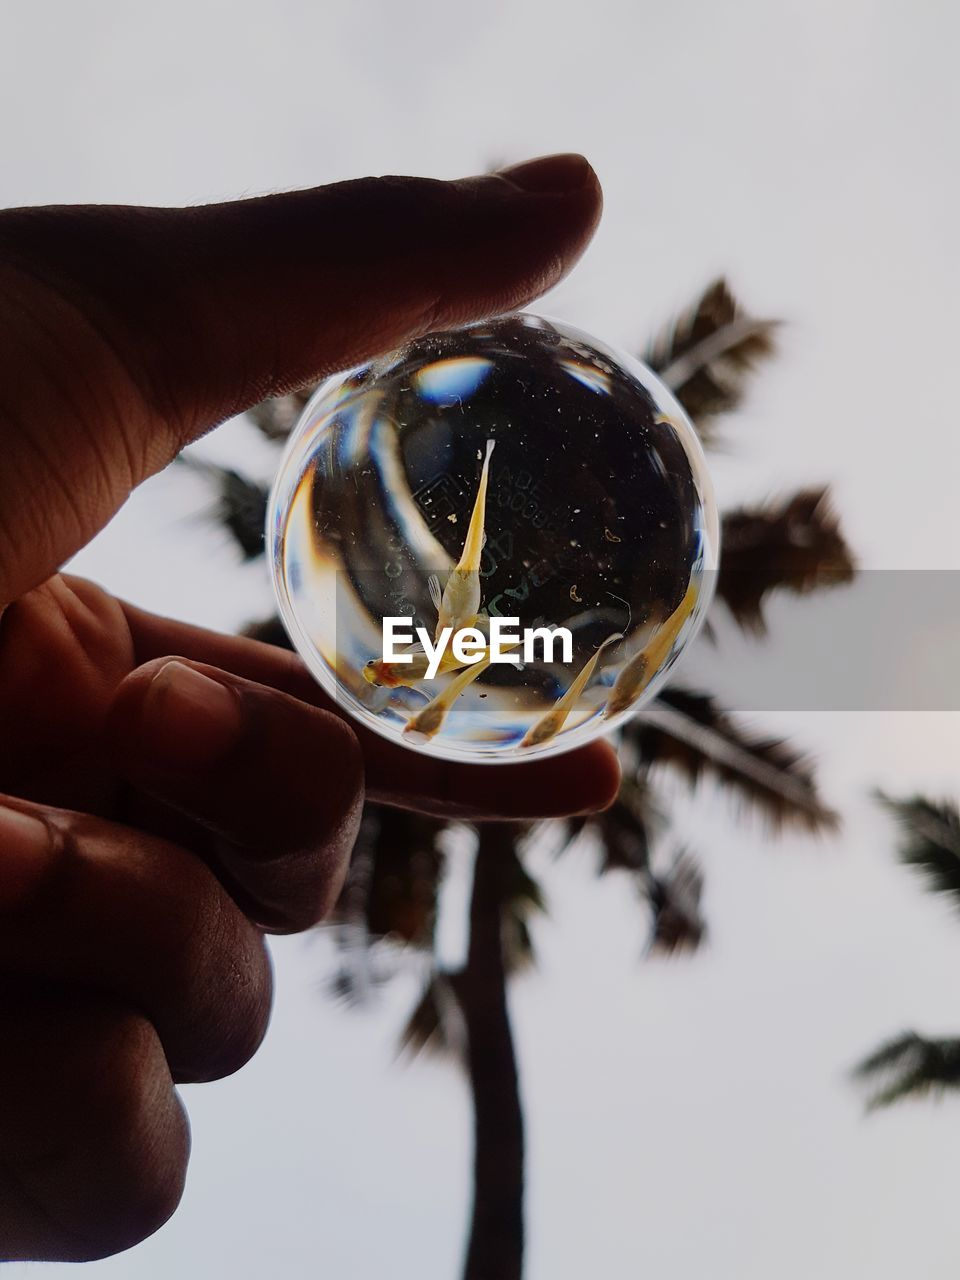 hand, human hand, holding, human body part, one person, finger, human finger, real people, unrecognizable person, sphere, transparent, body part, close-up, focus on foreground, glass - material, reflection, nature, lifestyles, personal perspective, glass